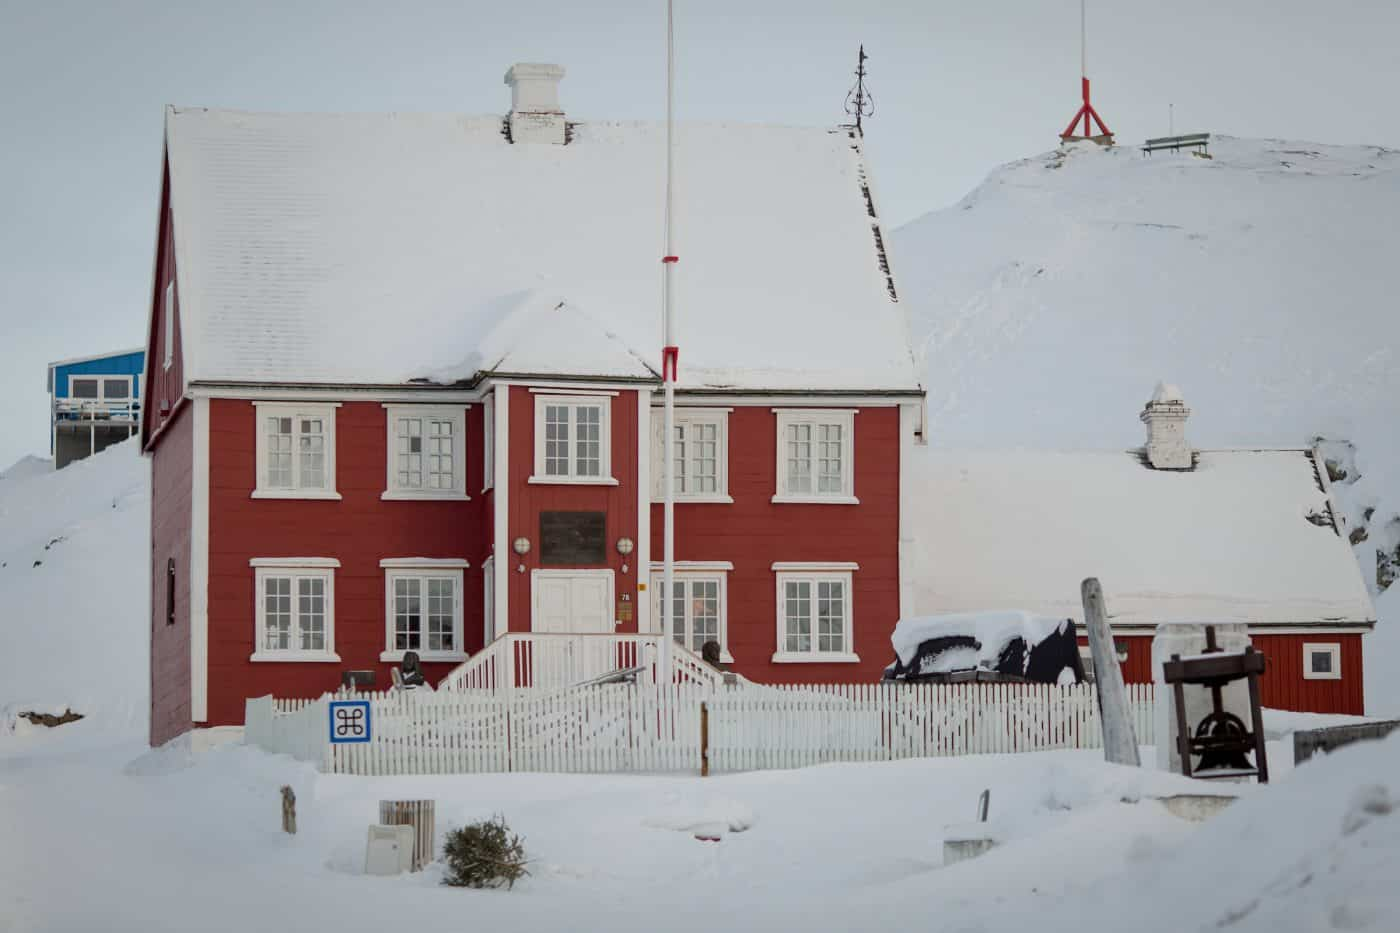 The museum in Ilulissat in Greenland. By Mads Pihl